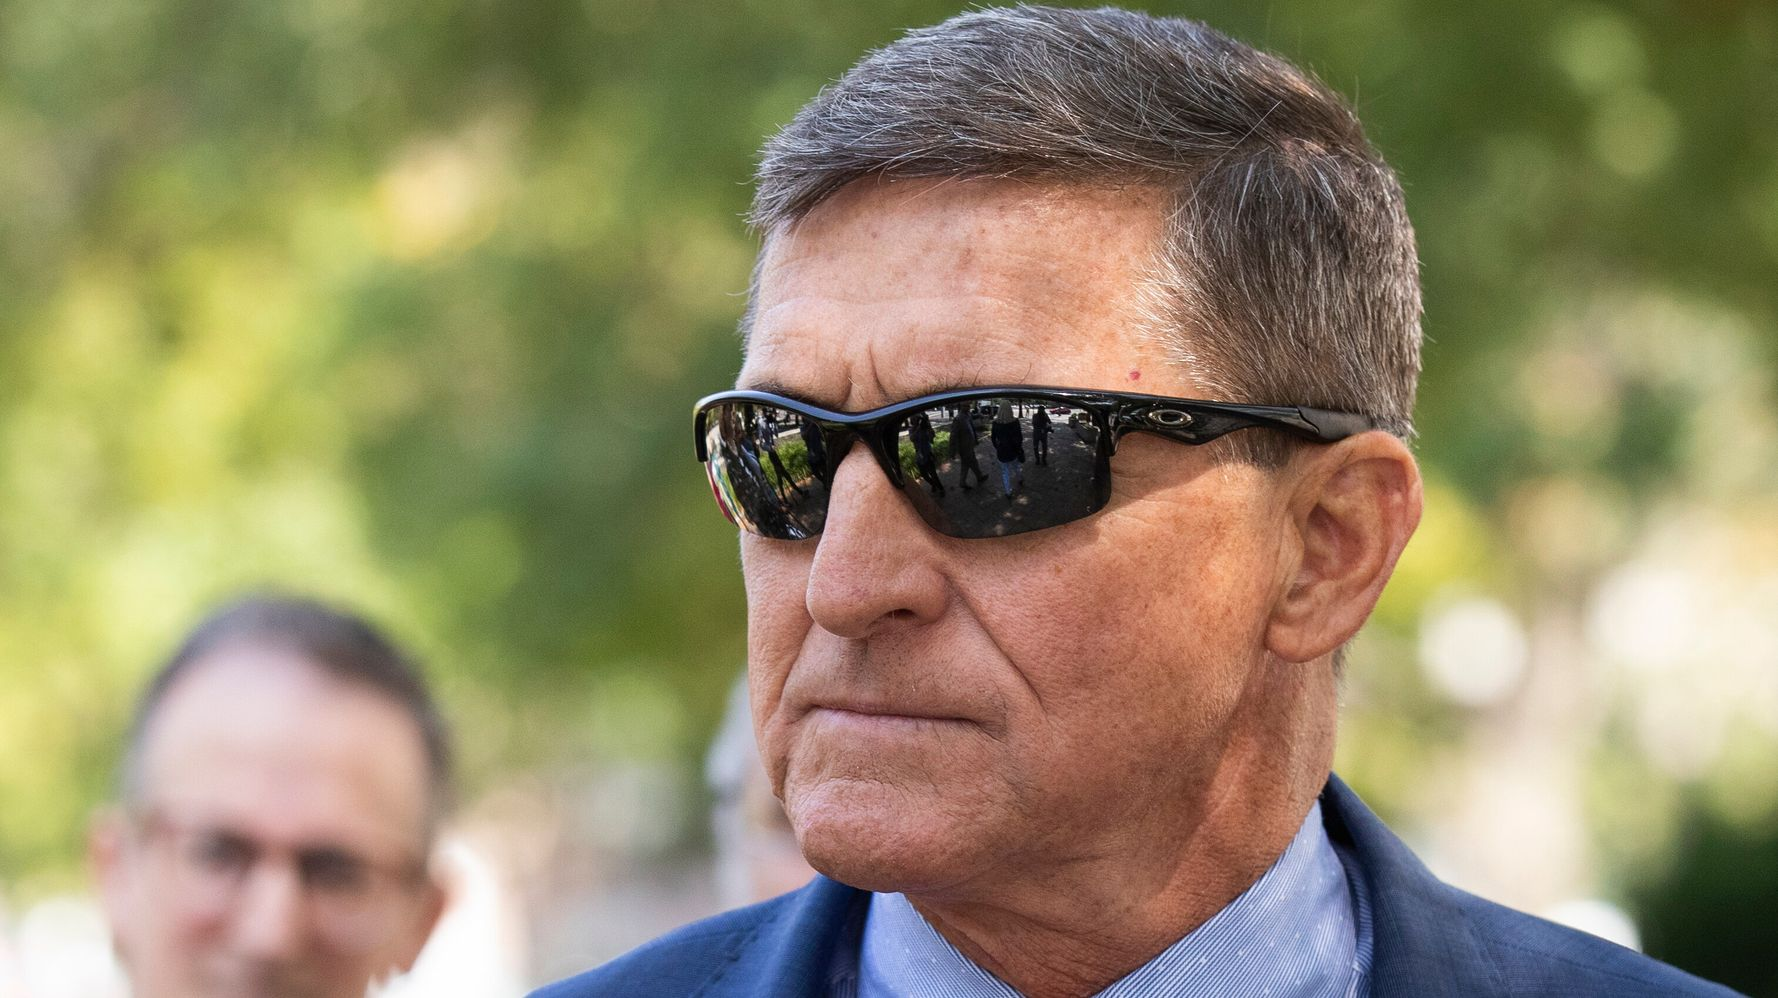 Westlake Legal Group 5e1e6e8624000052006c3c4a Michael Flynn Files To Withdraw Guilty Plea After Prosecutors Ask For Jail Time